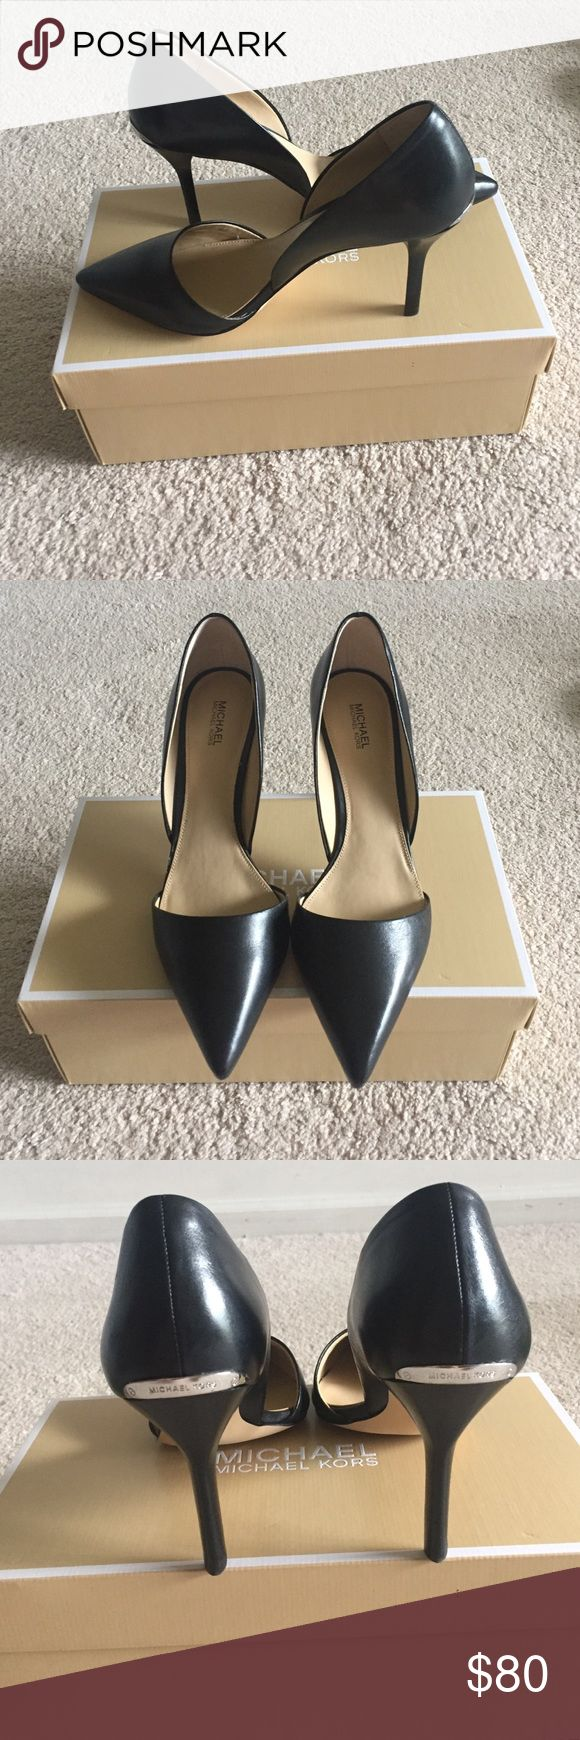 """Mickeal Kors leather Julieta D'orsay 👠 👠 👠 NEW comes with the box. Black leather pointed toes pumps, 3.5"""" heel, size 9.5 M 💕 Michael Kors Shoes Heels"""